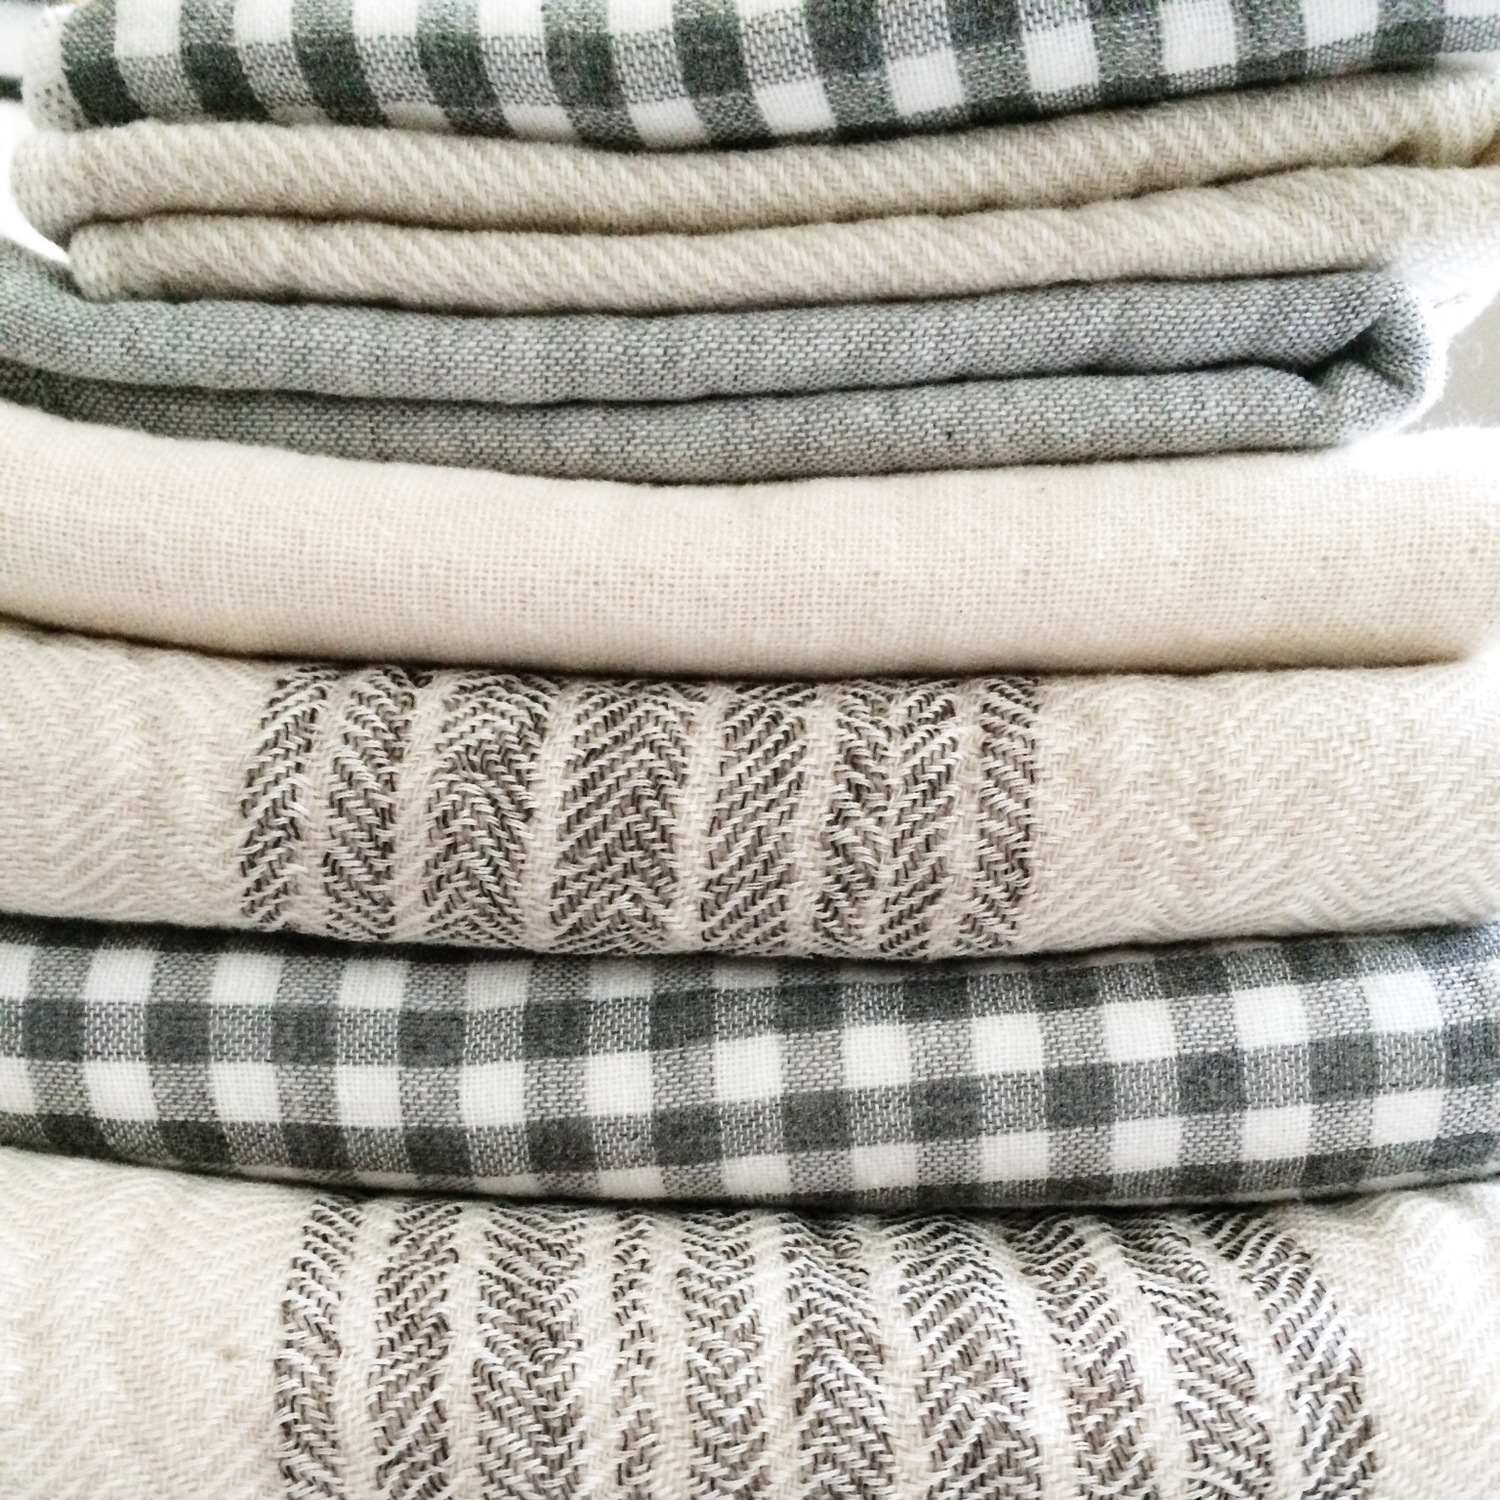 a stack of  kontex  and hartwell bath towels made in  imabari , all woven cotton on one side and terrycloth on the other.